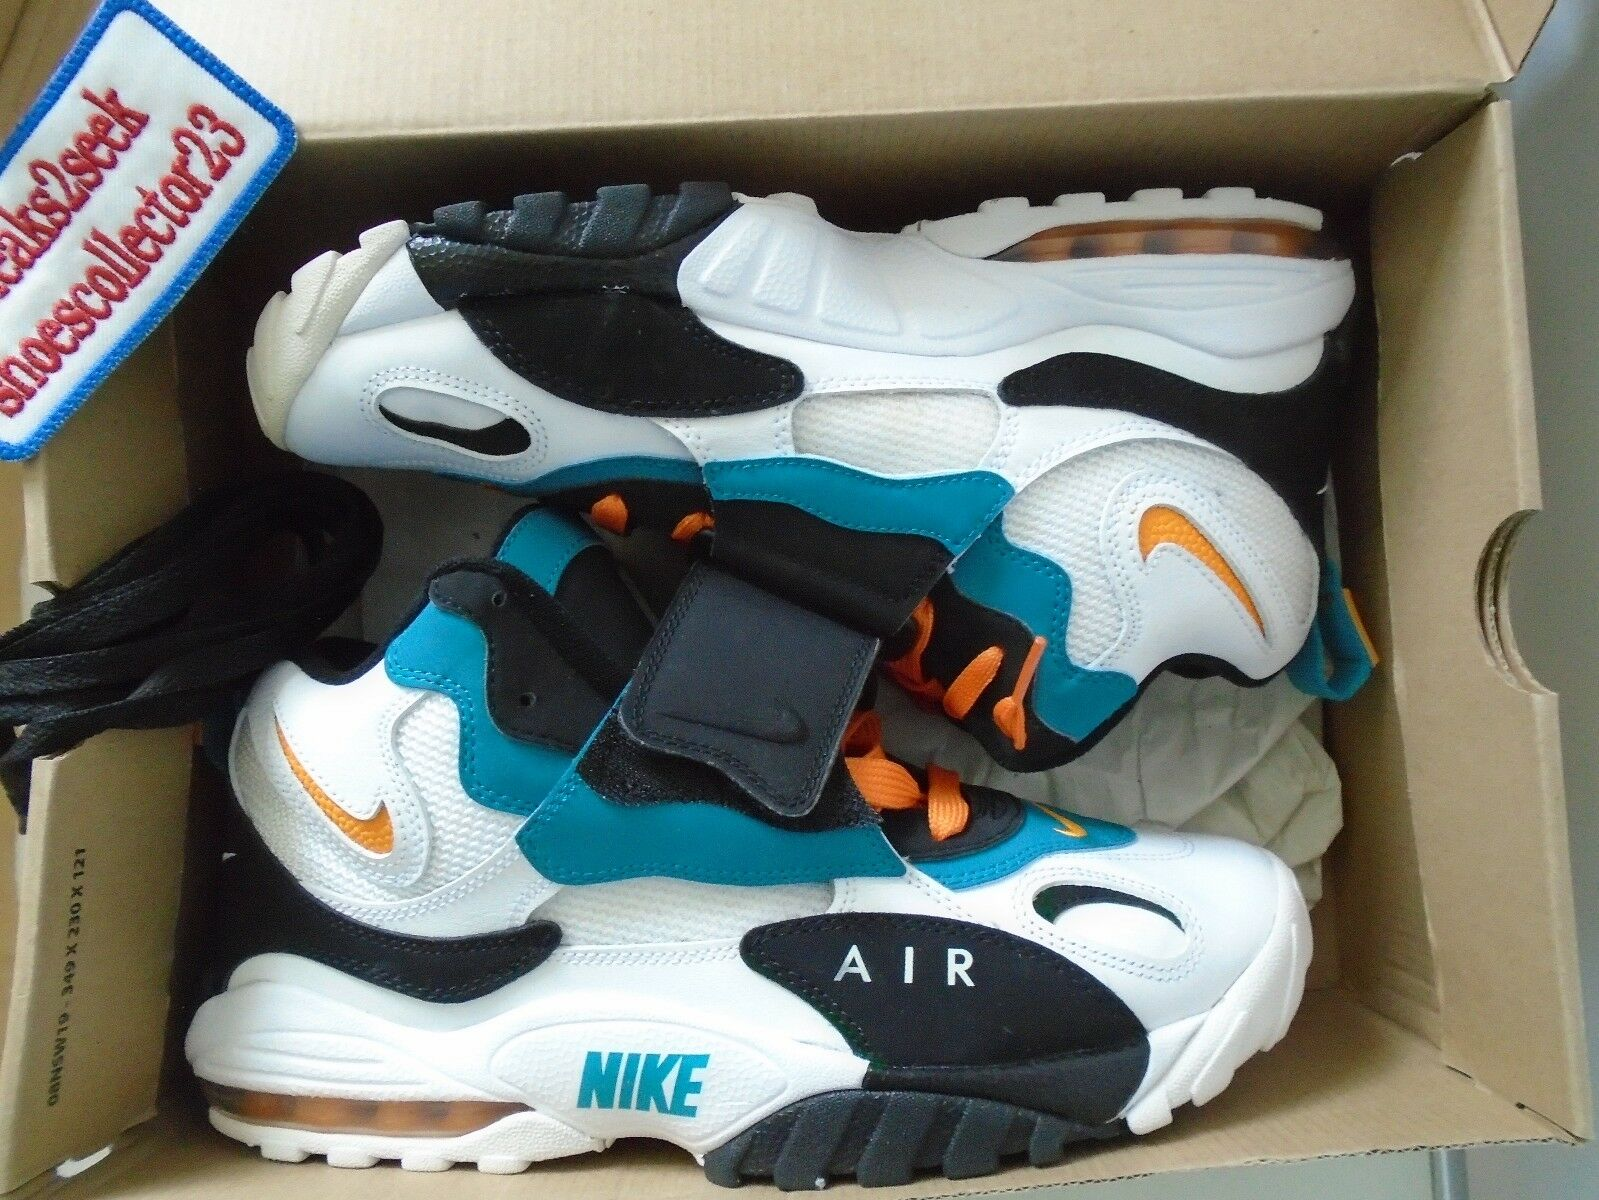 AIR MAX SPEED TURF White/Industrial Orange-Black - Nike OG 525255 100 Size 10